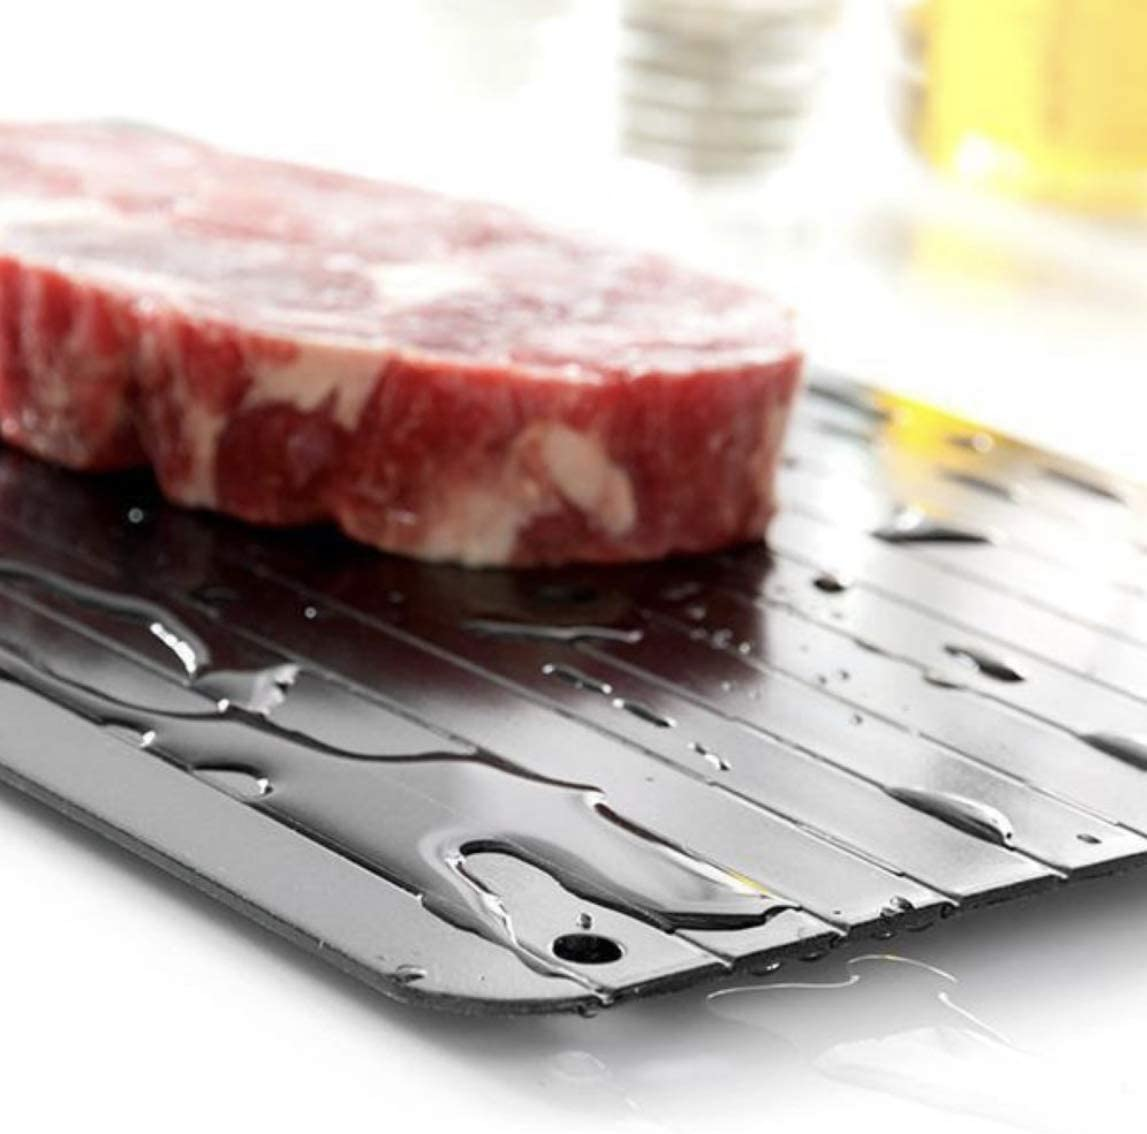 Defrosting Tray | Meat Thawing Board | Eco Friendly Defrost | Food Safe Aluminum - Fast Fresh Healthy [ Limited Time, Introductory Price]